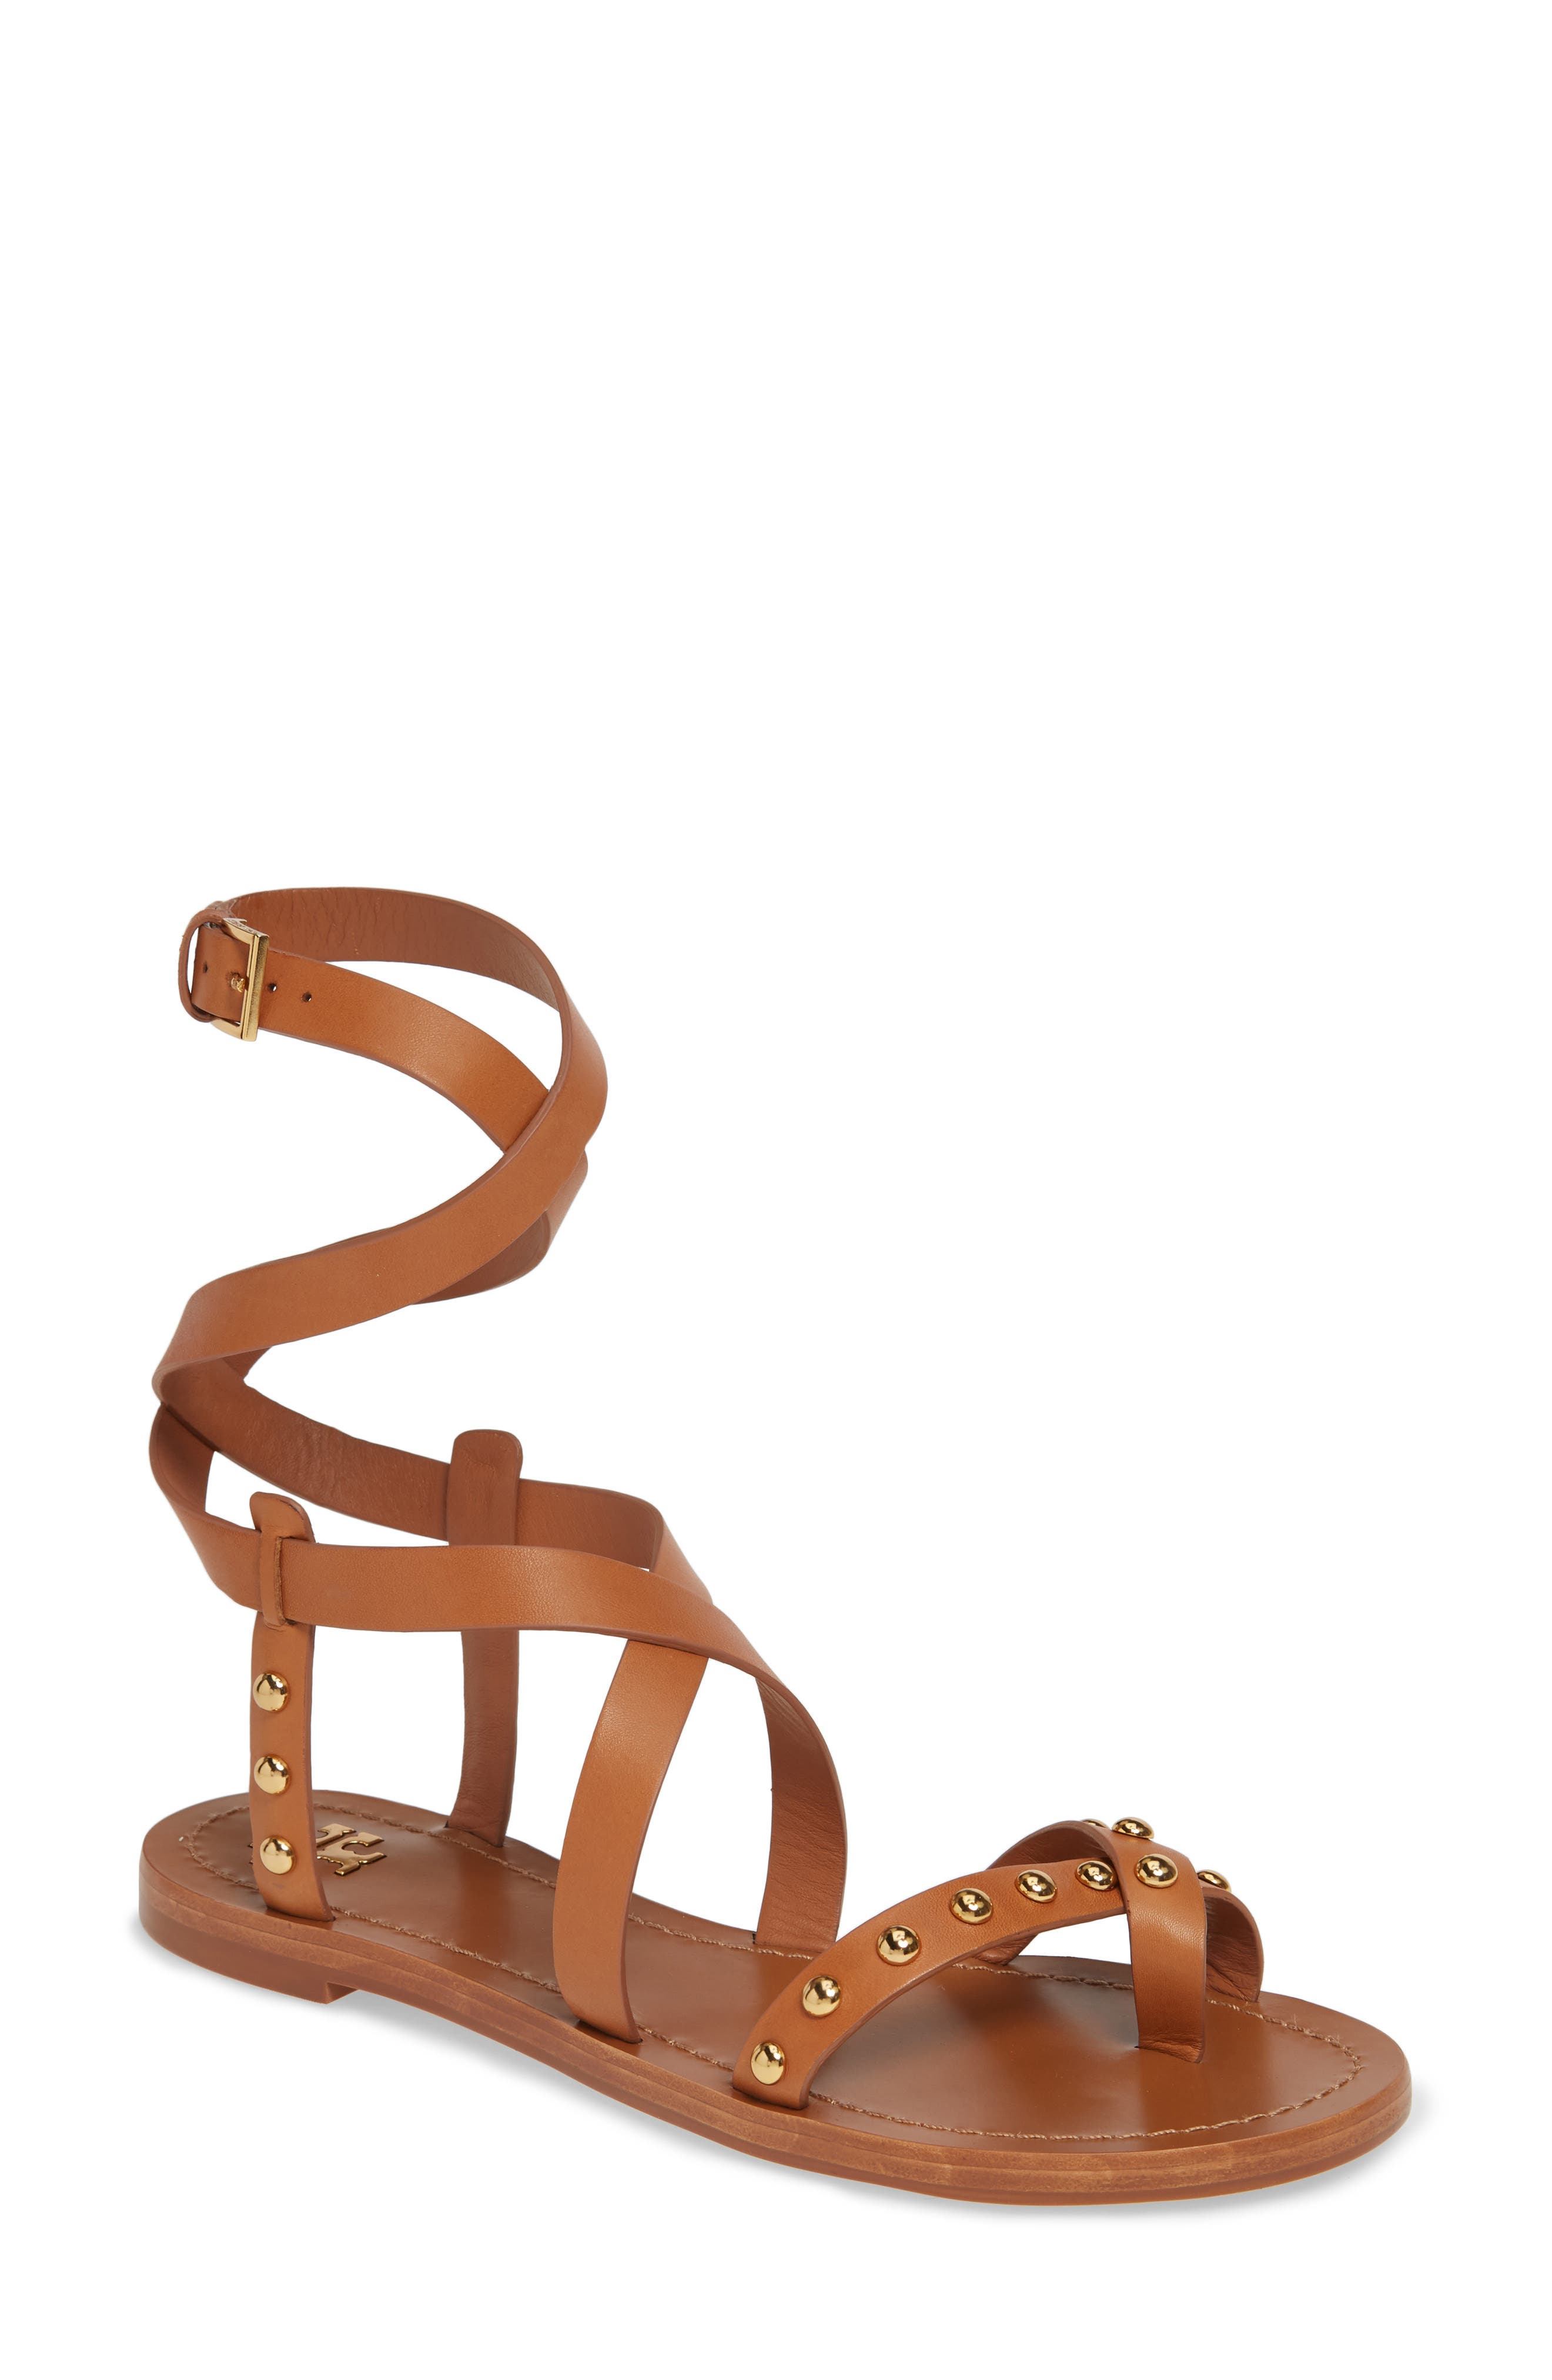 01c04d6169780d Tory Burch Ankle Strap Sandals for Women